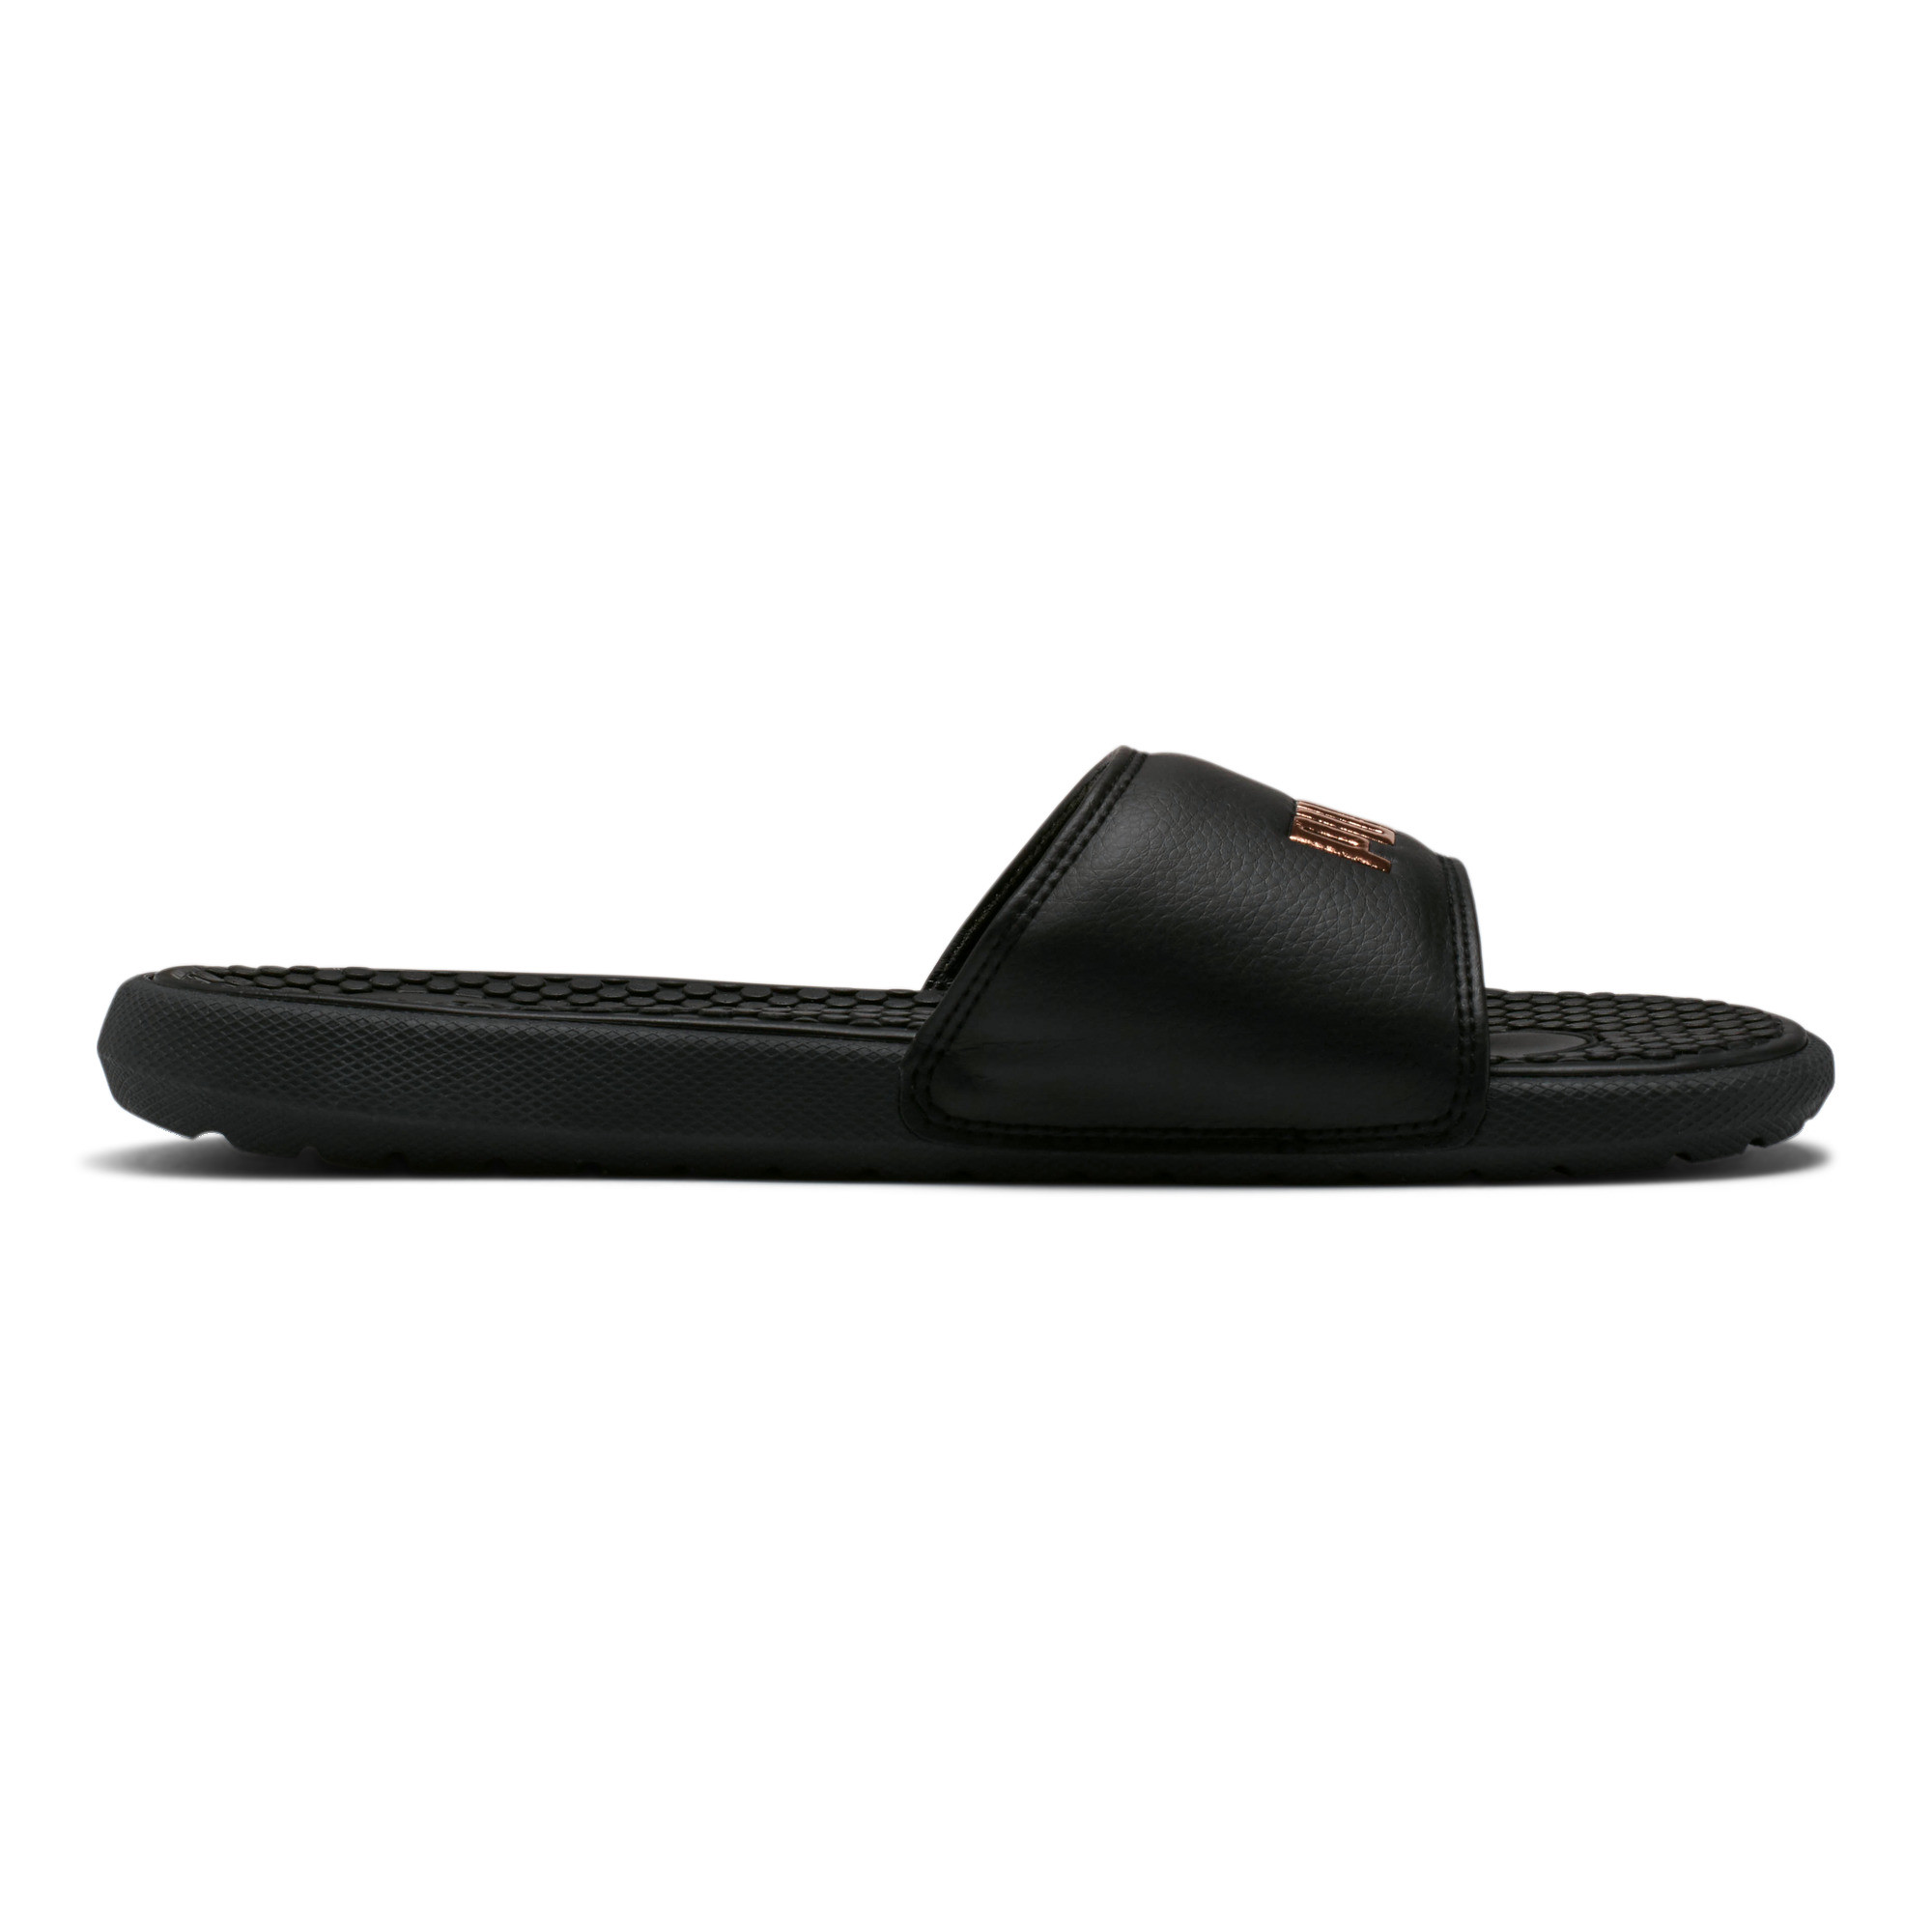 PUMA-Women-039-s-Cool-Cat-Slides thumbnail 6